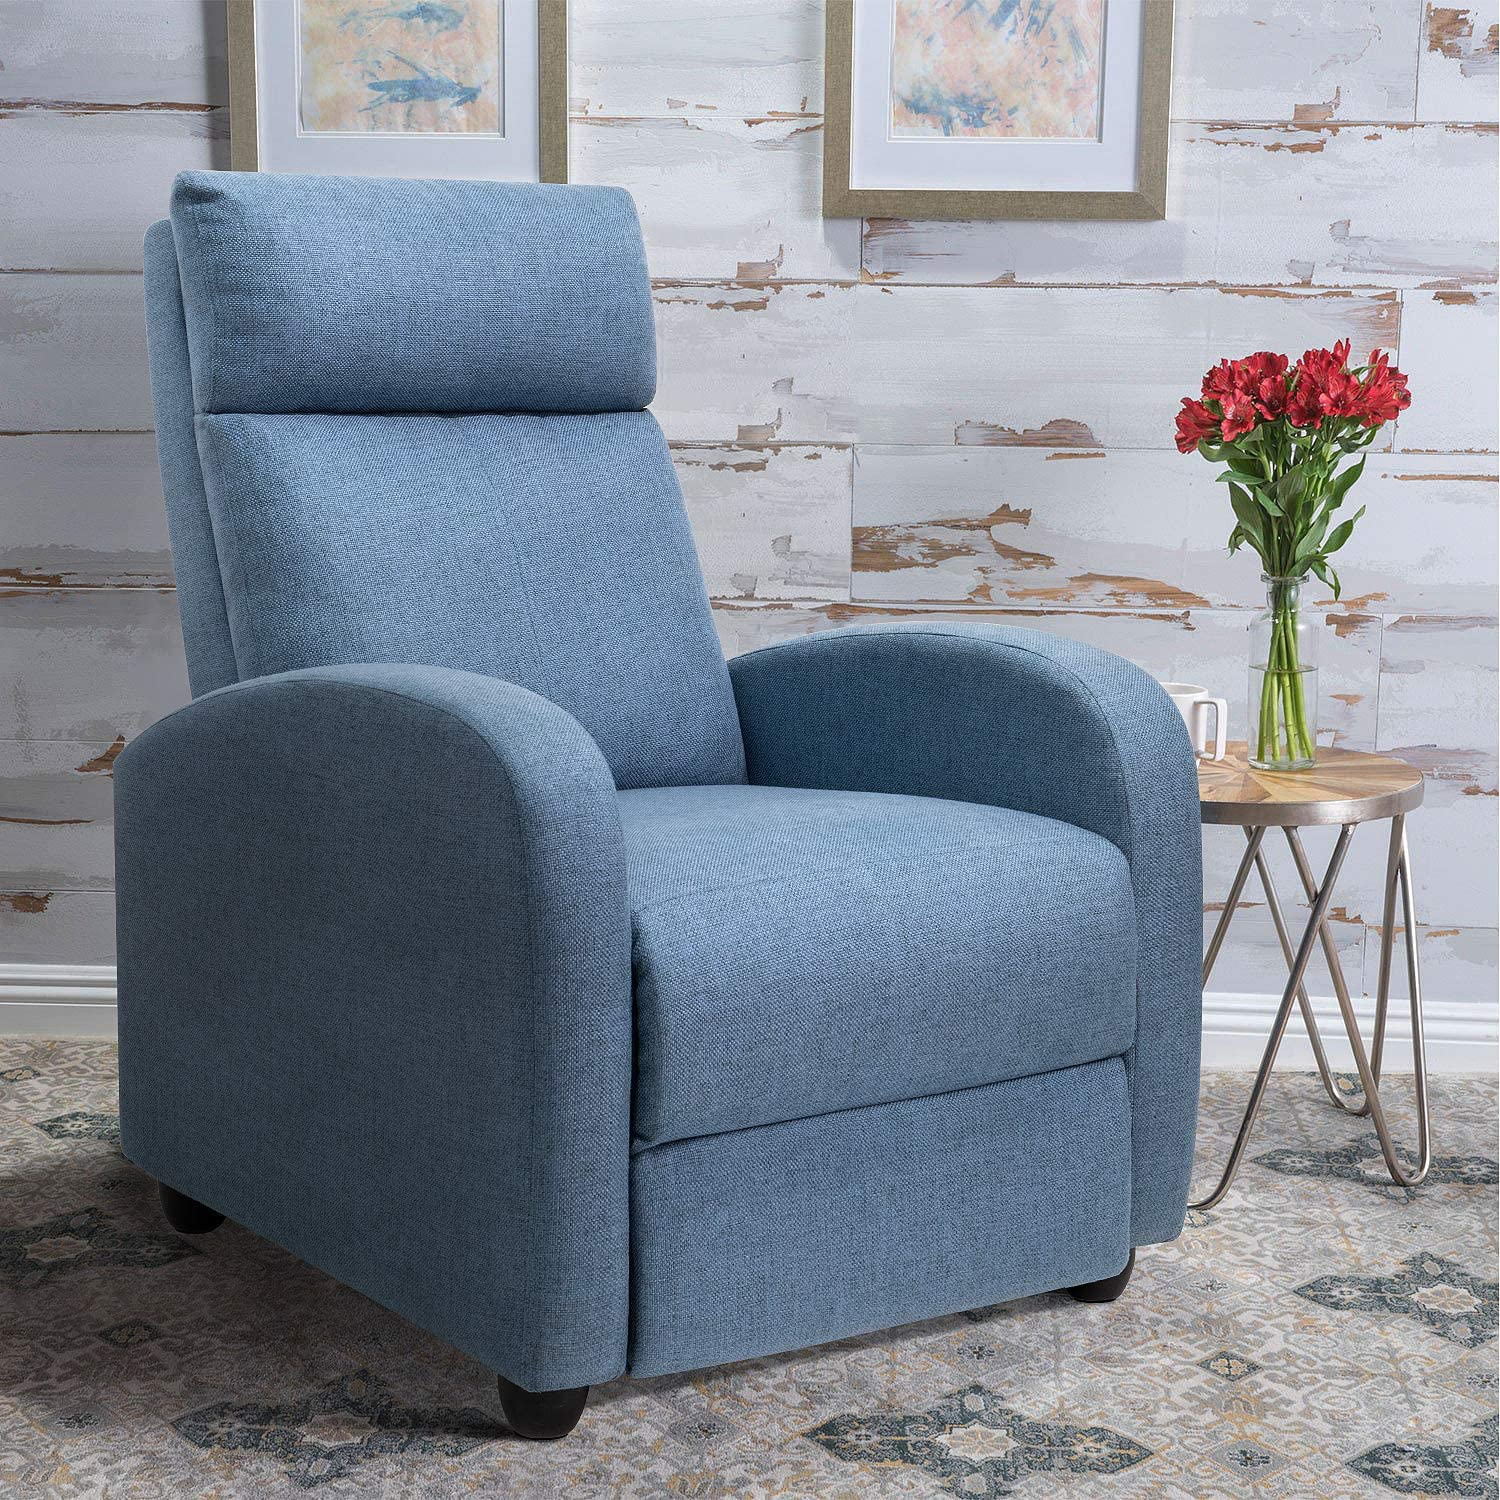 Tuoze Fabric Recliners for small spaces